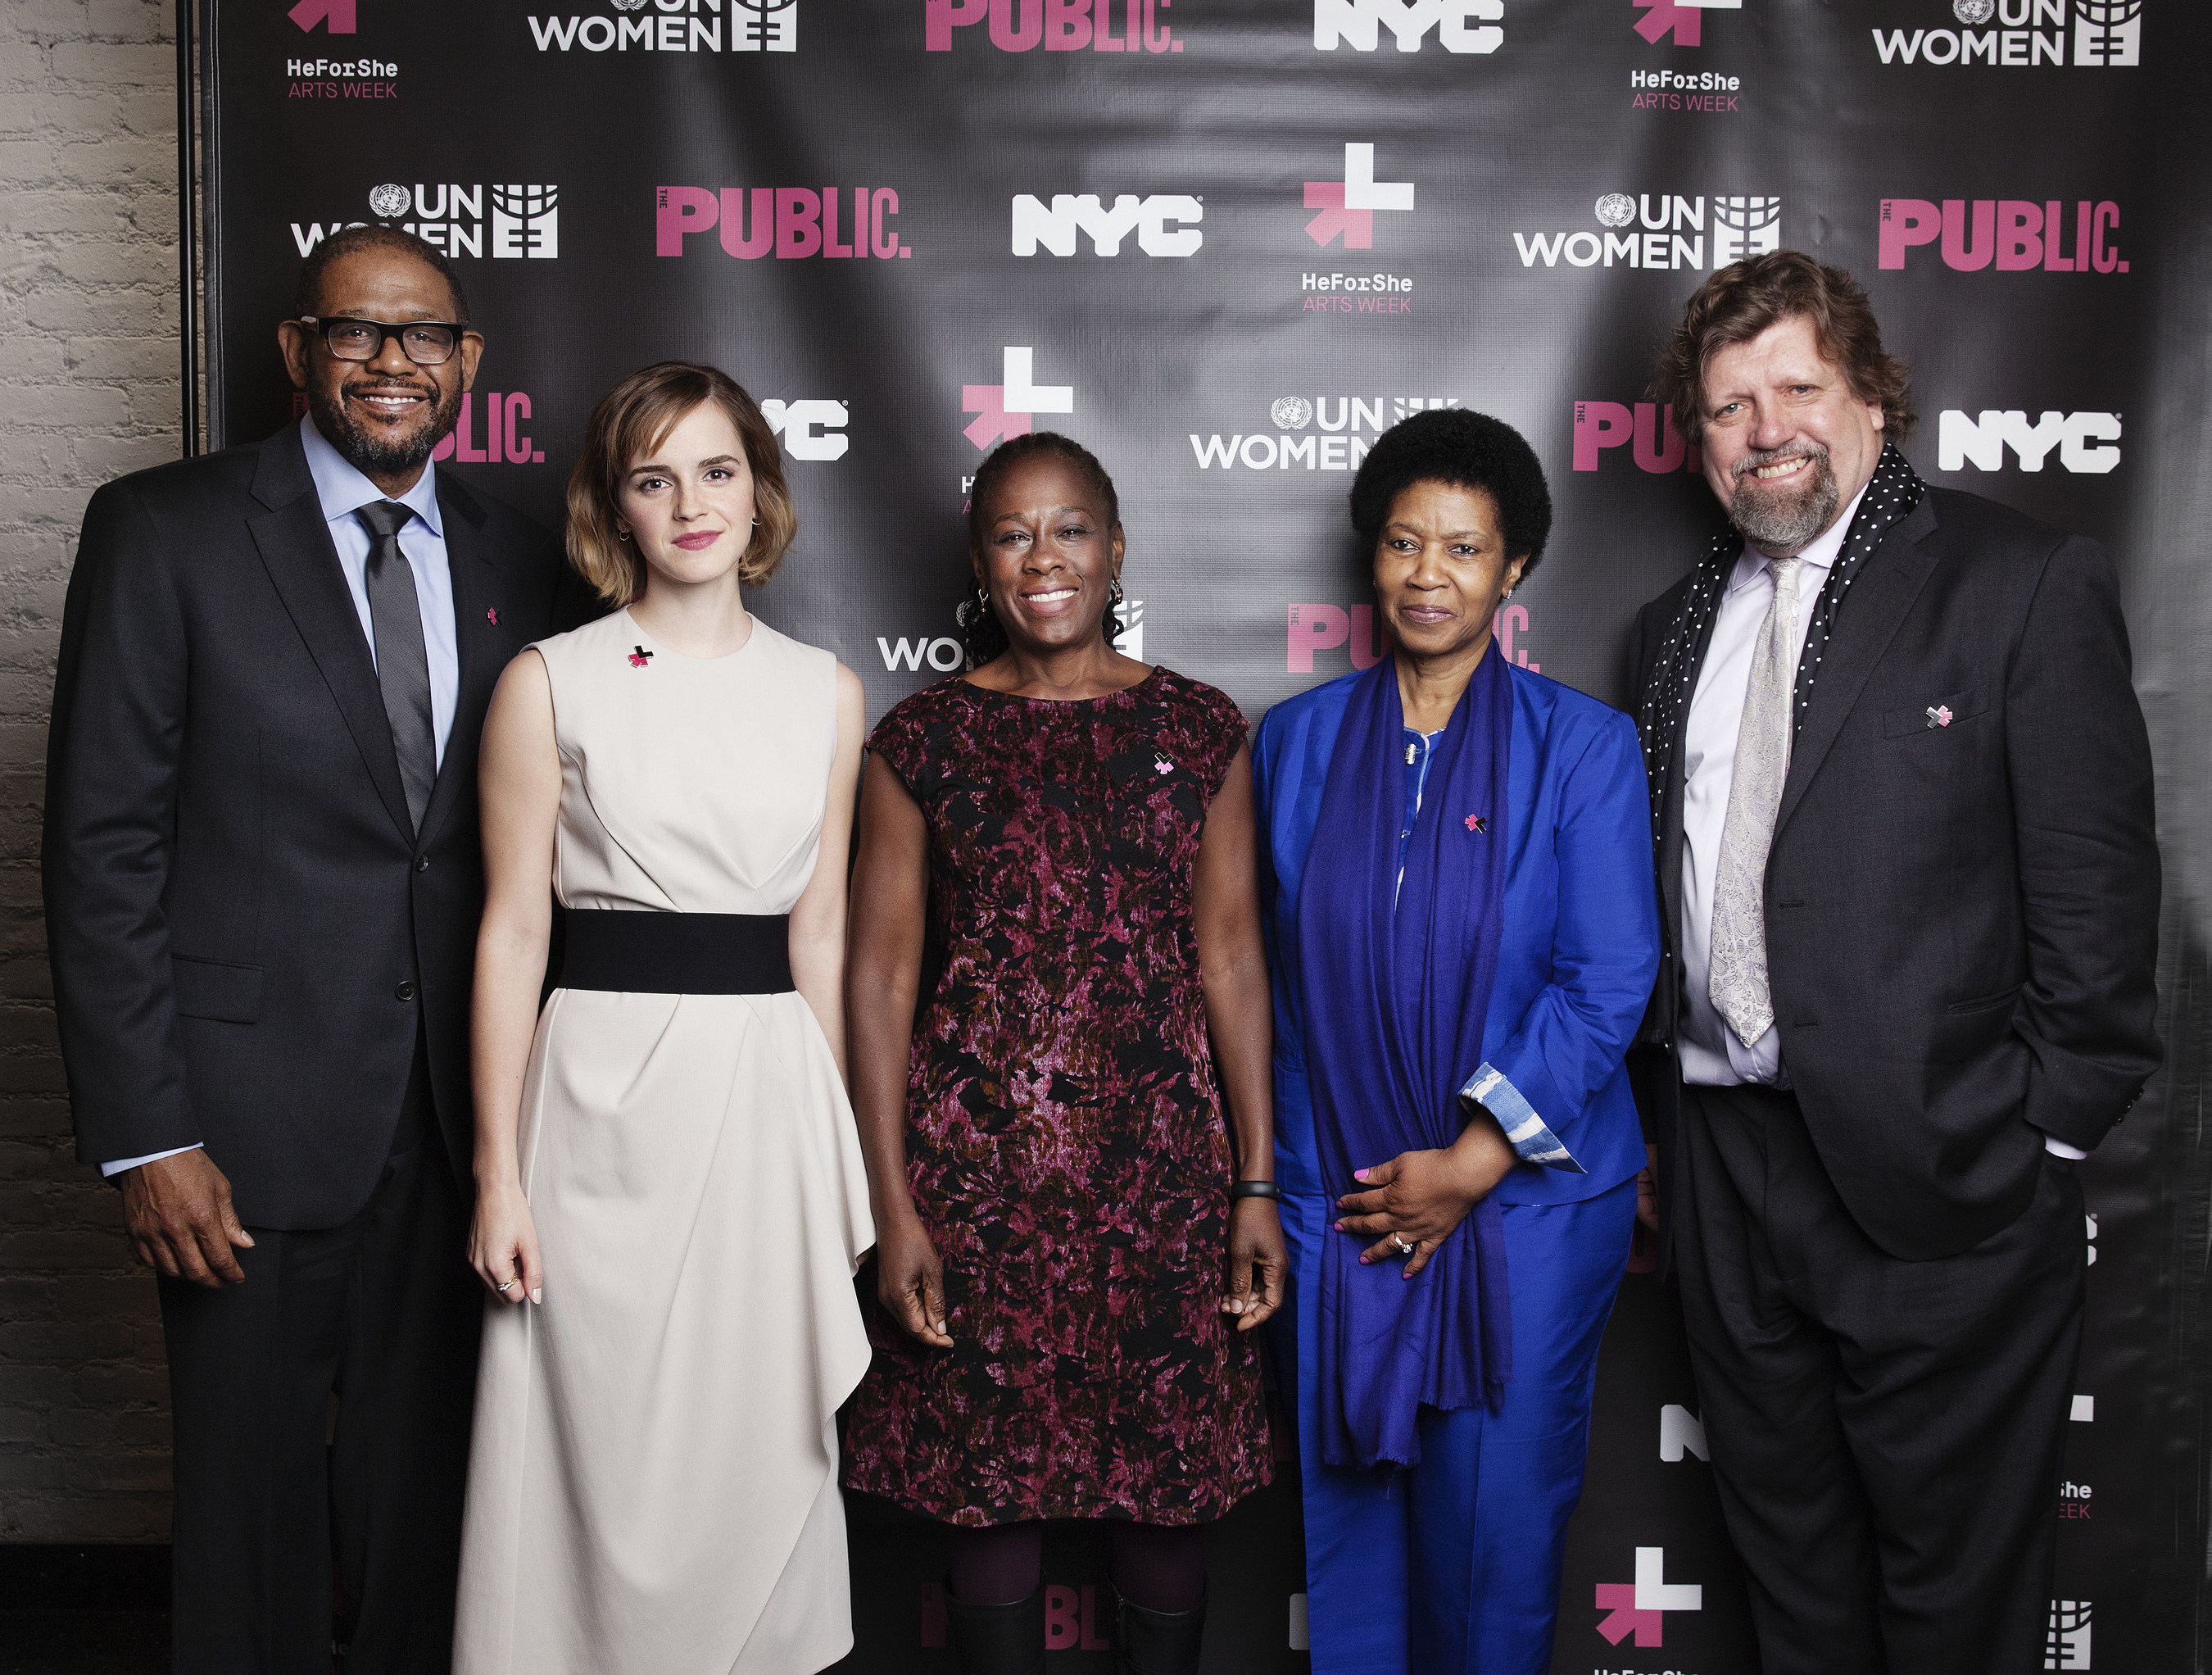 UN Women Launches HeForShe Arts Week to celebrate International Women's Day.(from left to right): SDG Advocate and UNESCO Special Envoy for Peace Forest Whitaker; UN Women Goodwill Ambassador Emma Watson; UN Women Executive Director, Phumzile Mlambo-Ngcuka; The Public Theatre's Artistic Director, Oskar Eustis